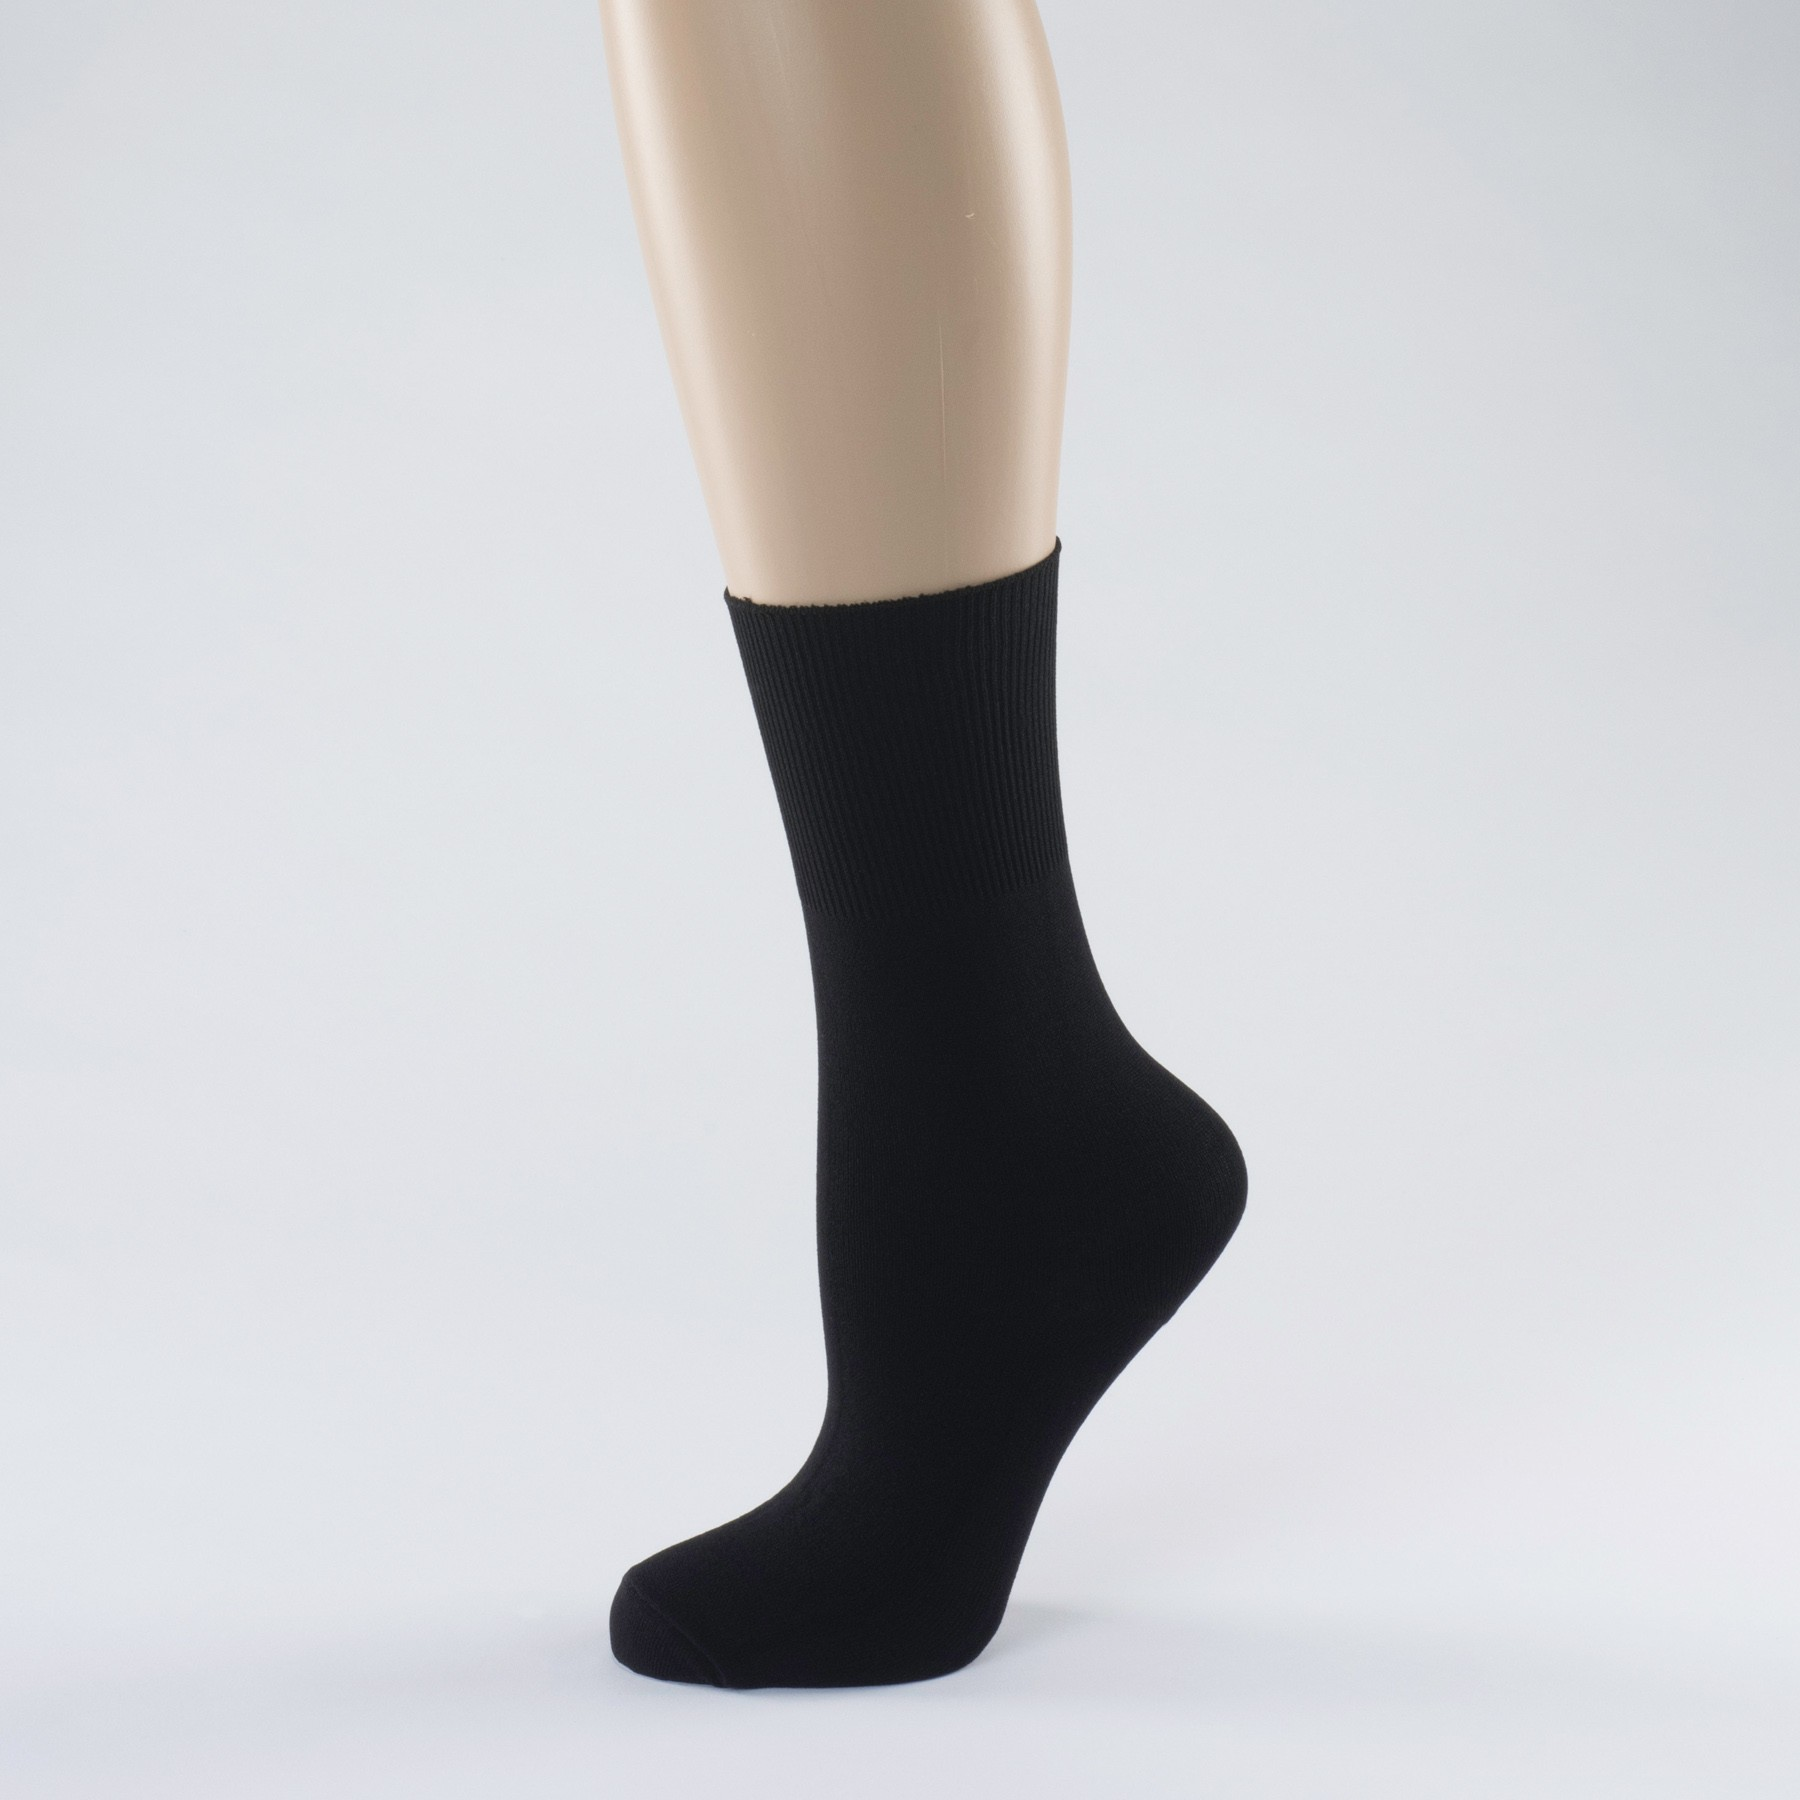 Silky Dance Ballet Socks (Black)